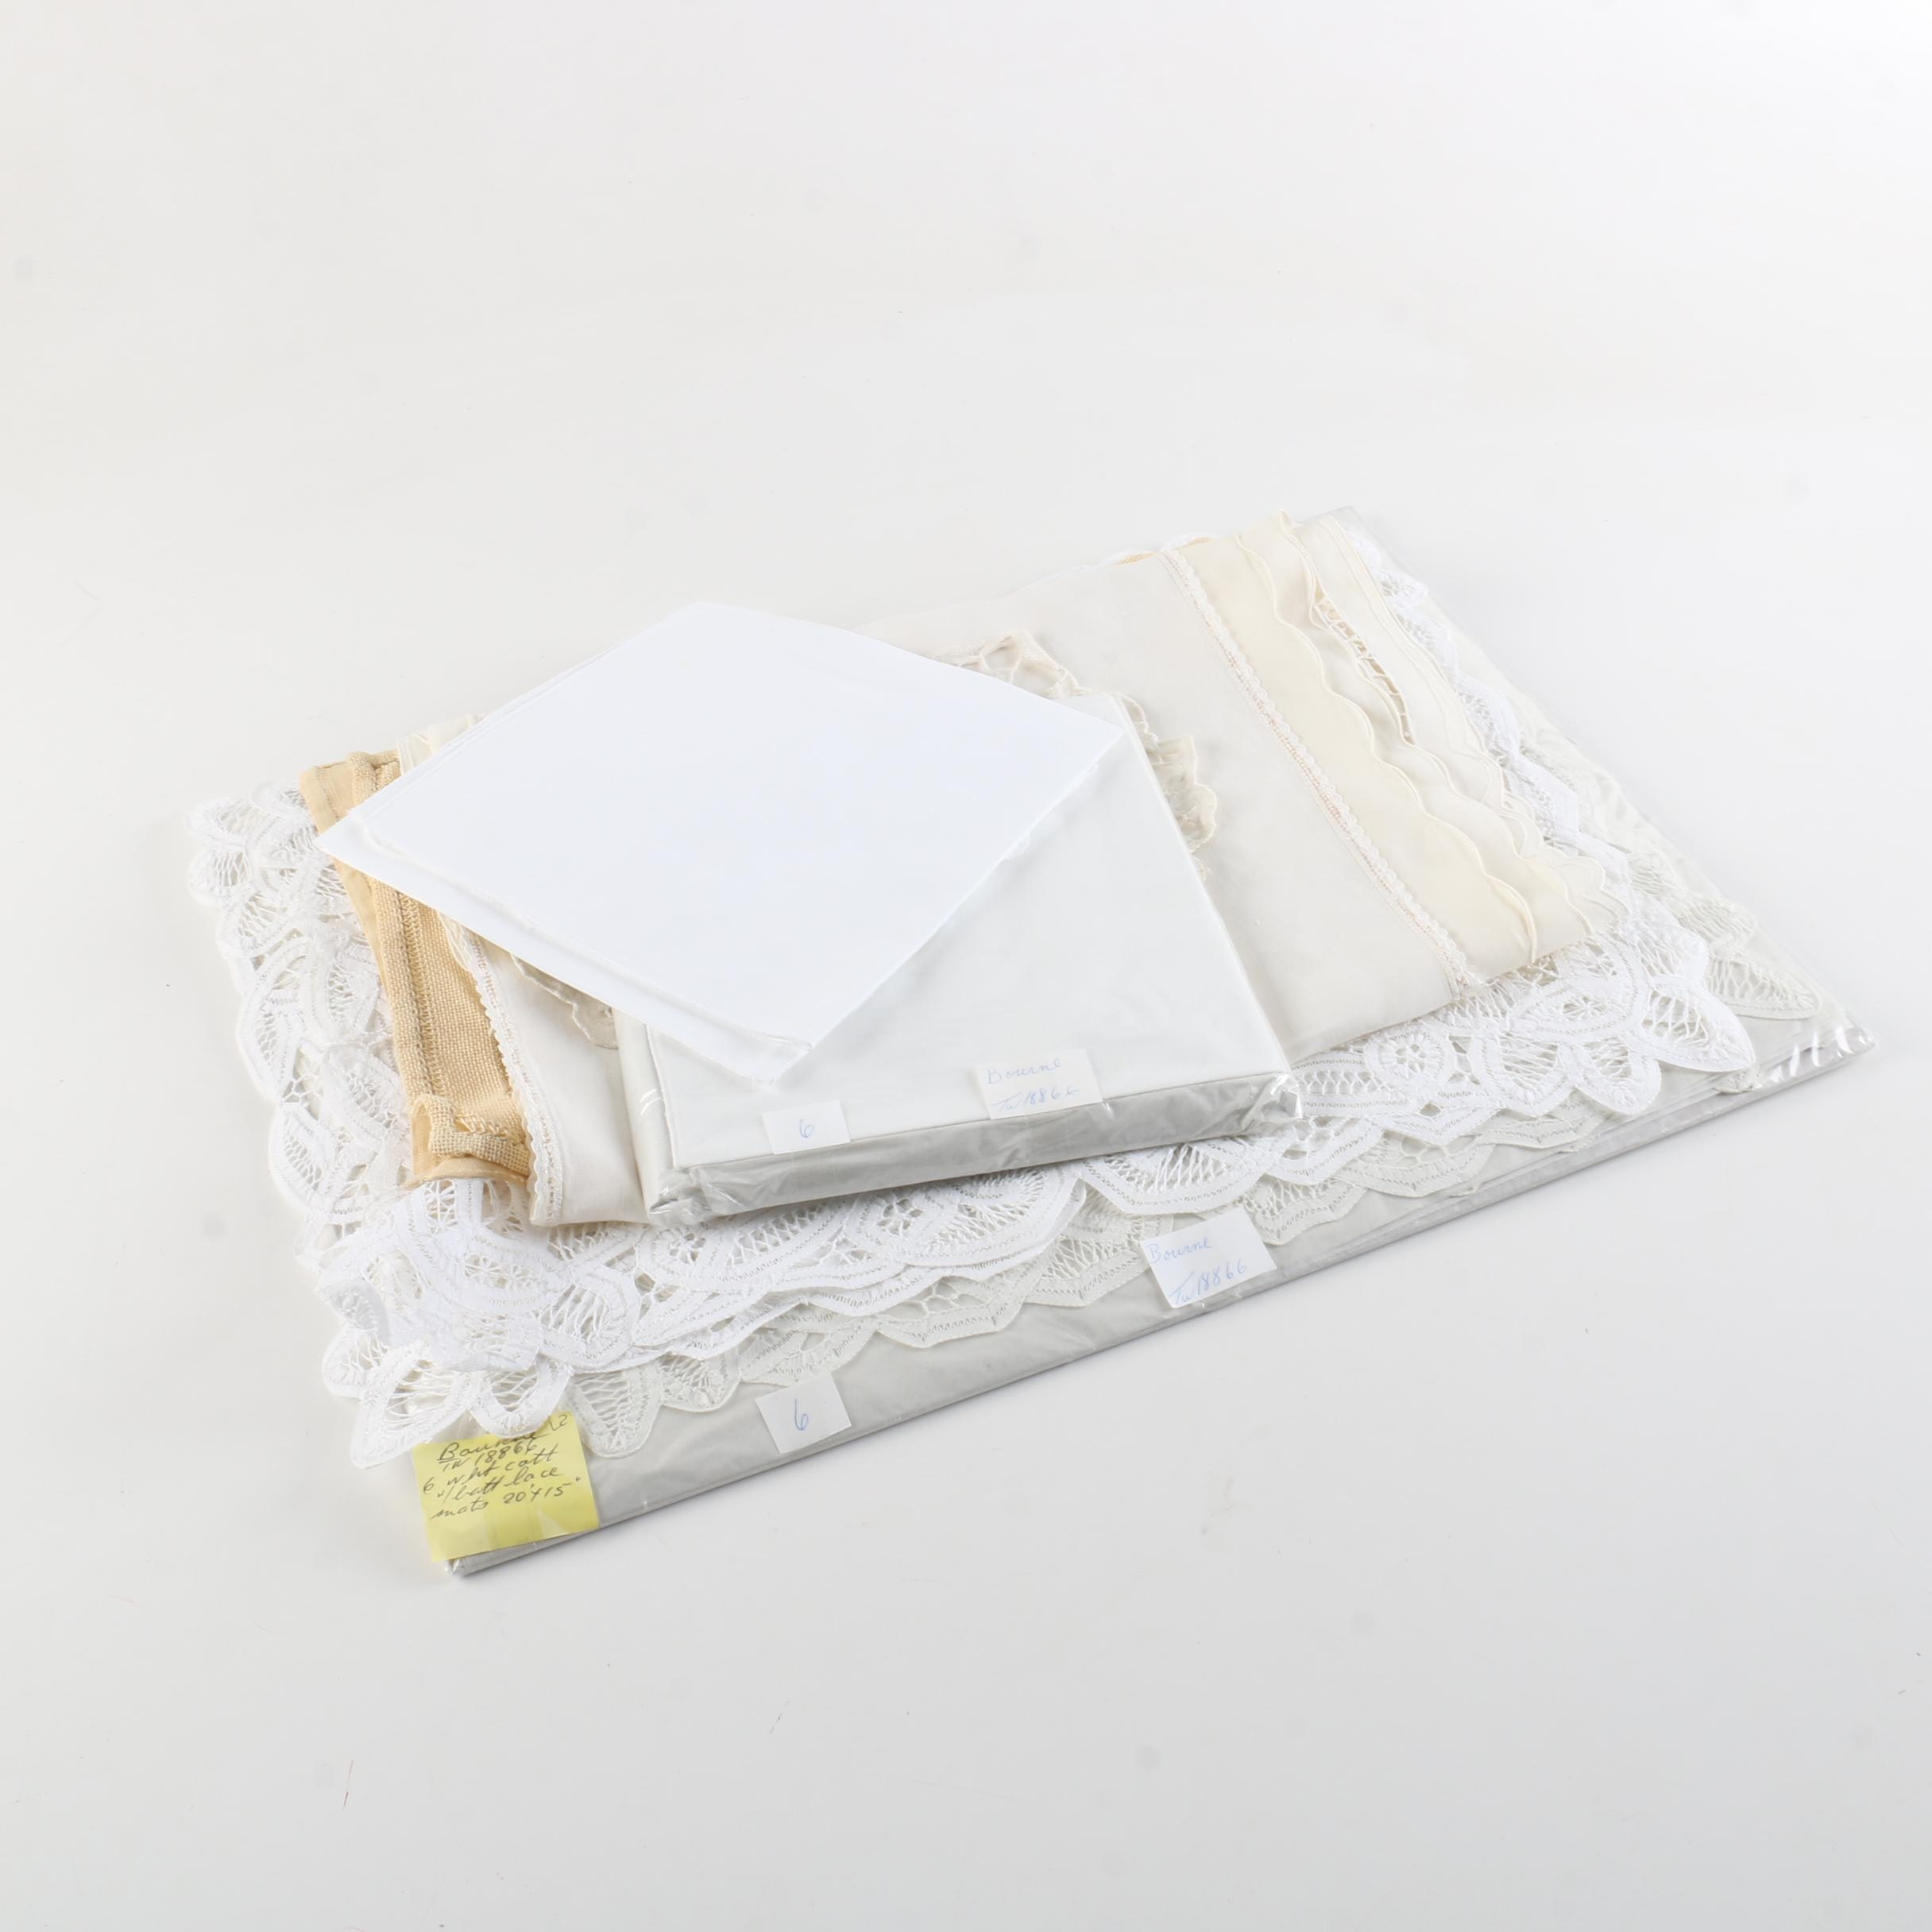 Lace-Trimmed and Embroidered Table Linens